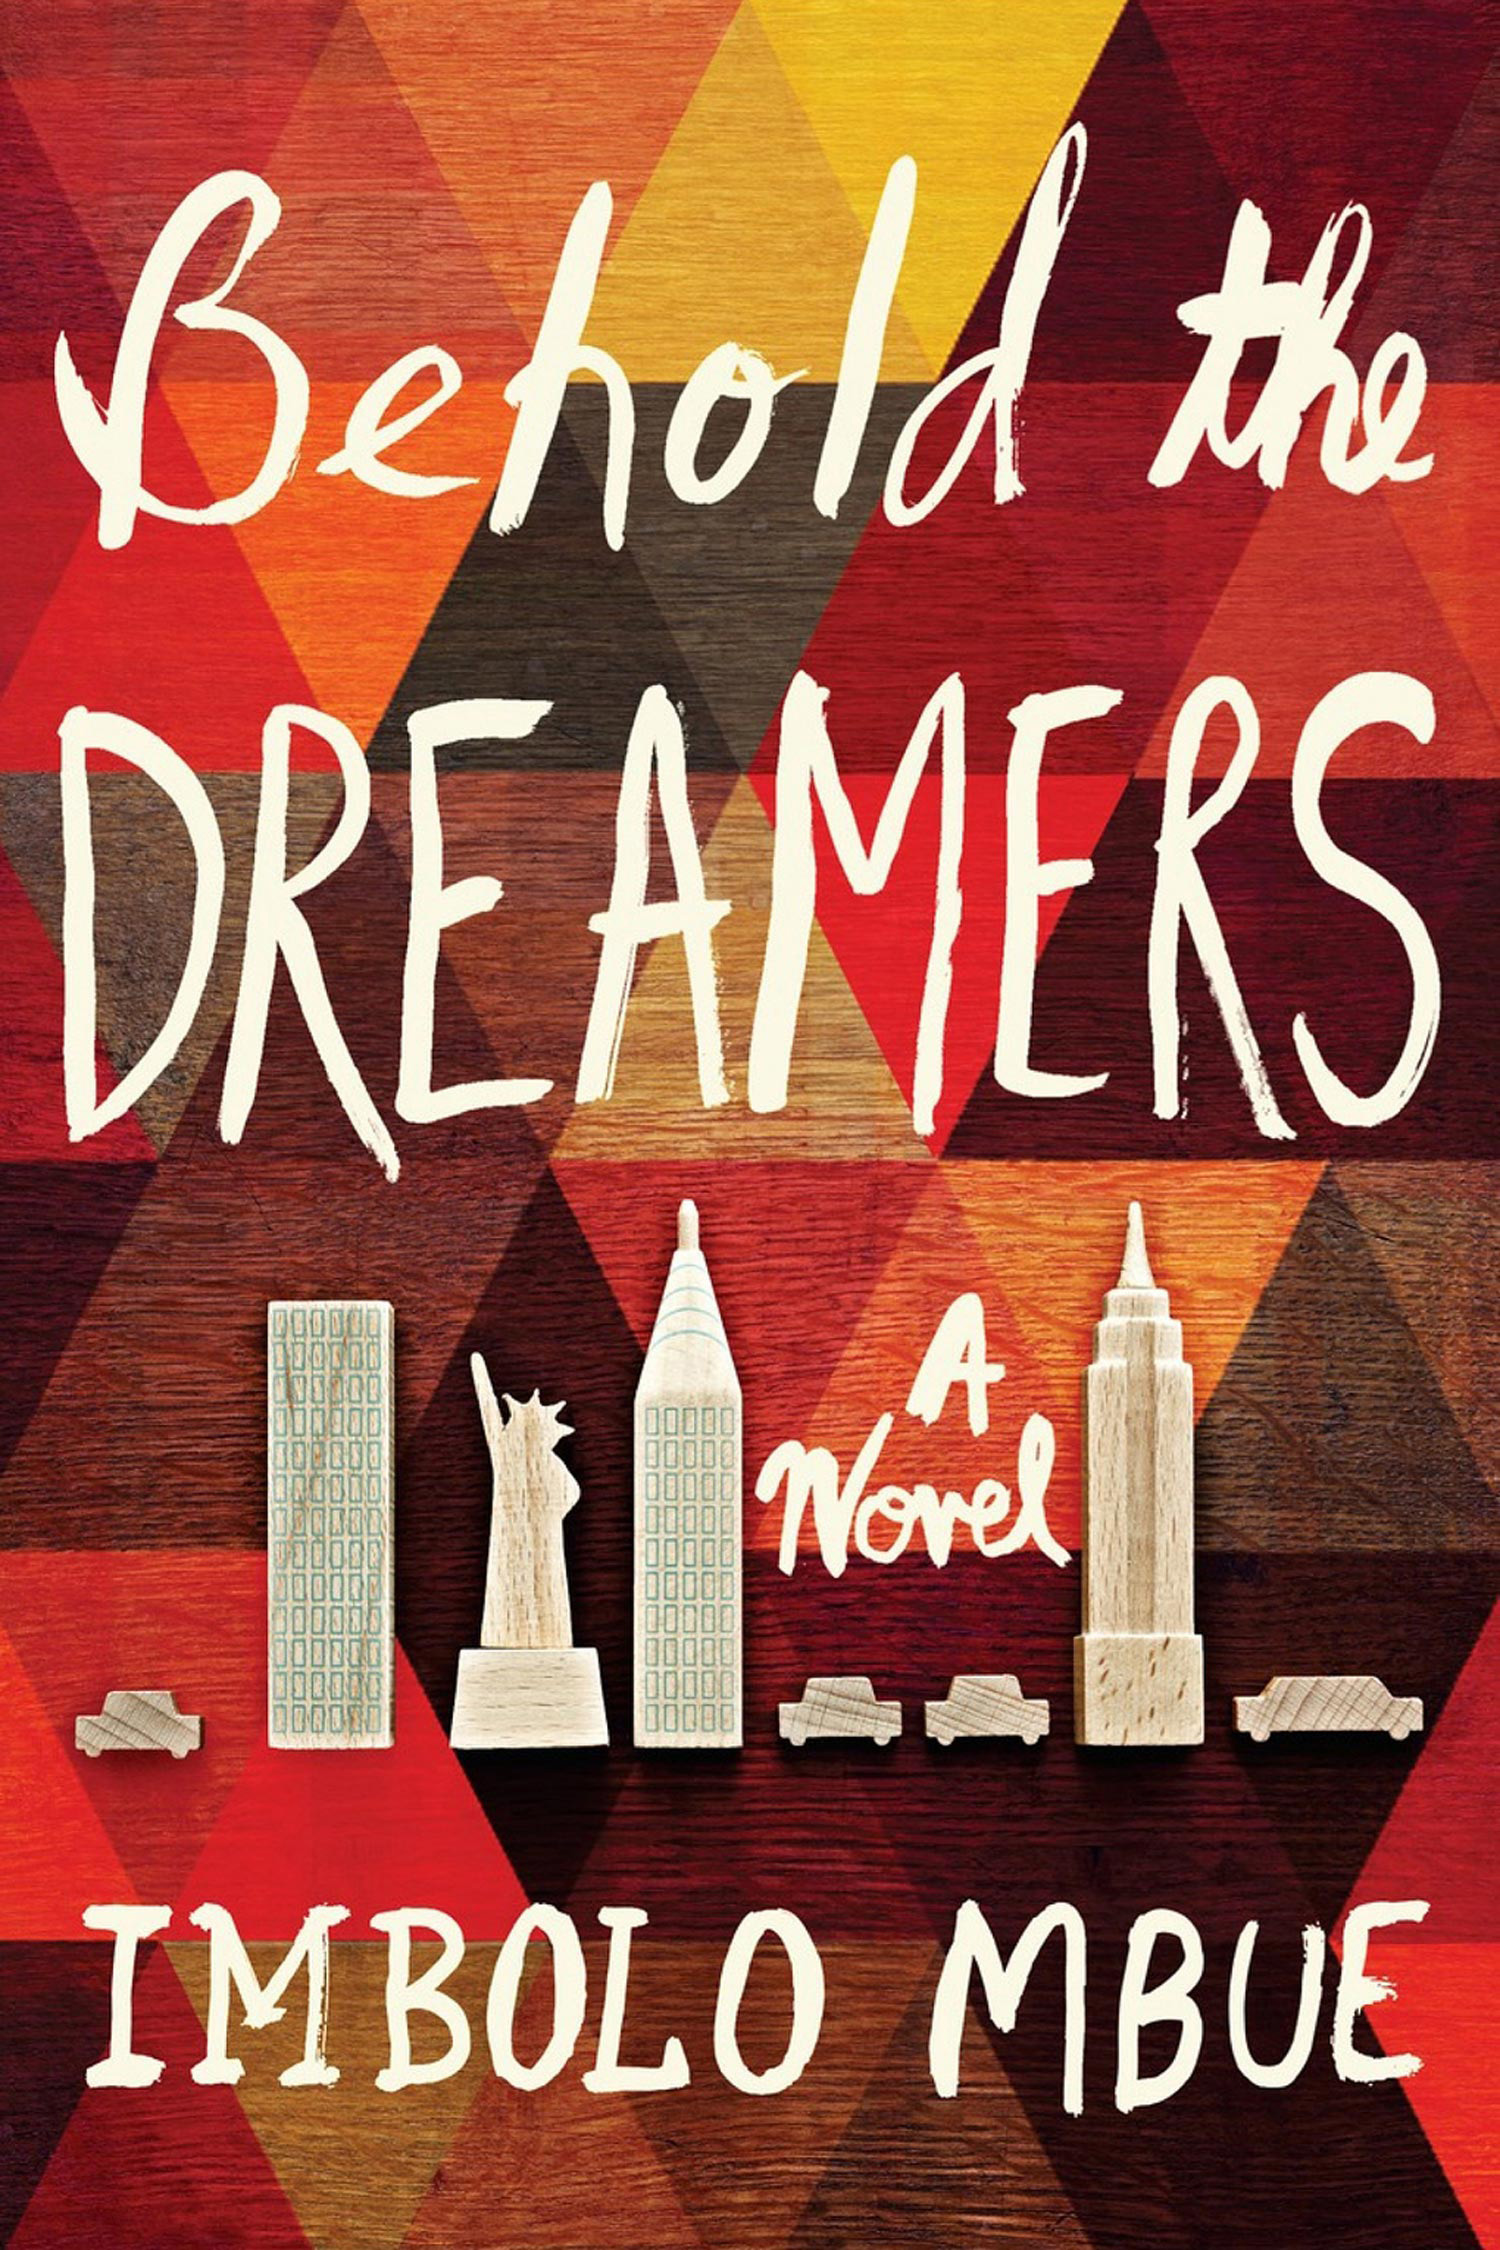 behold the dreamers-book cover